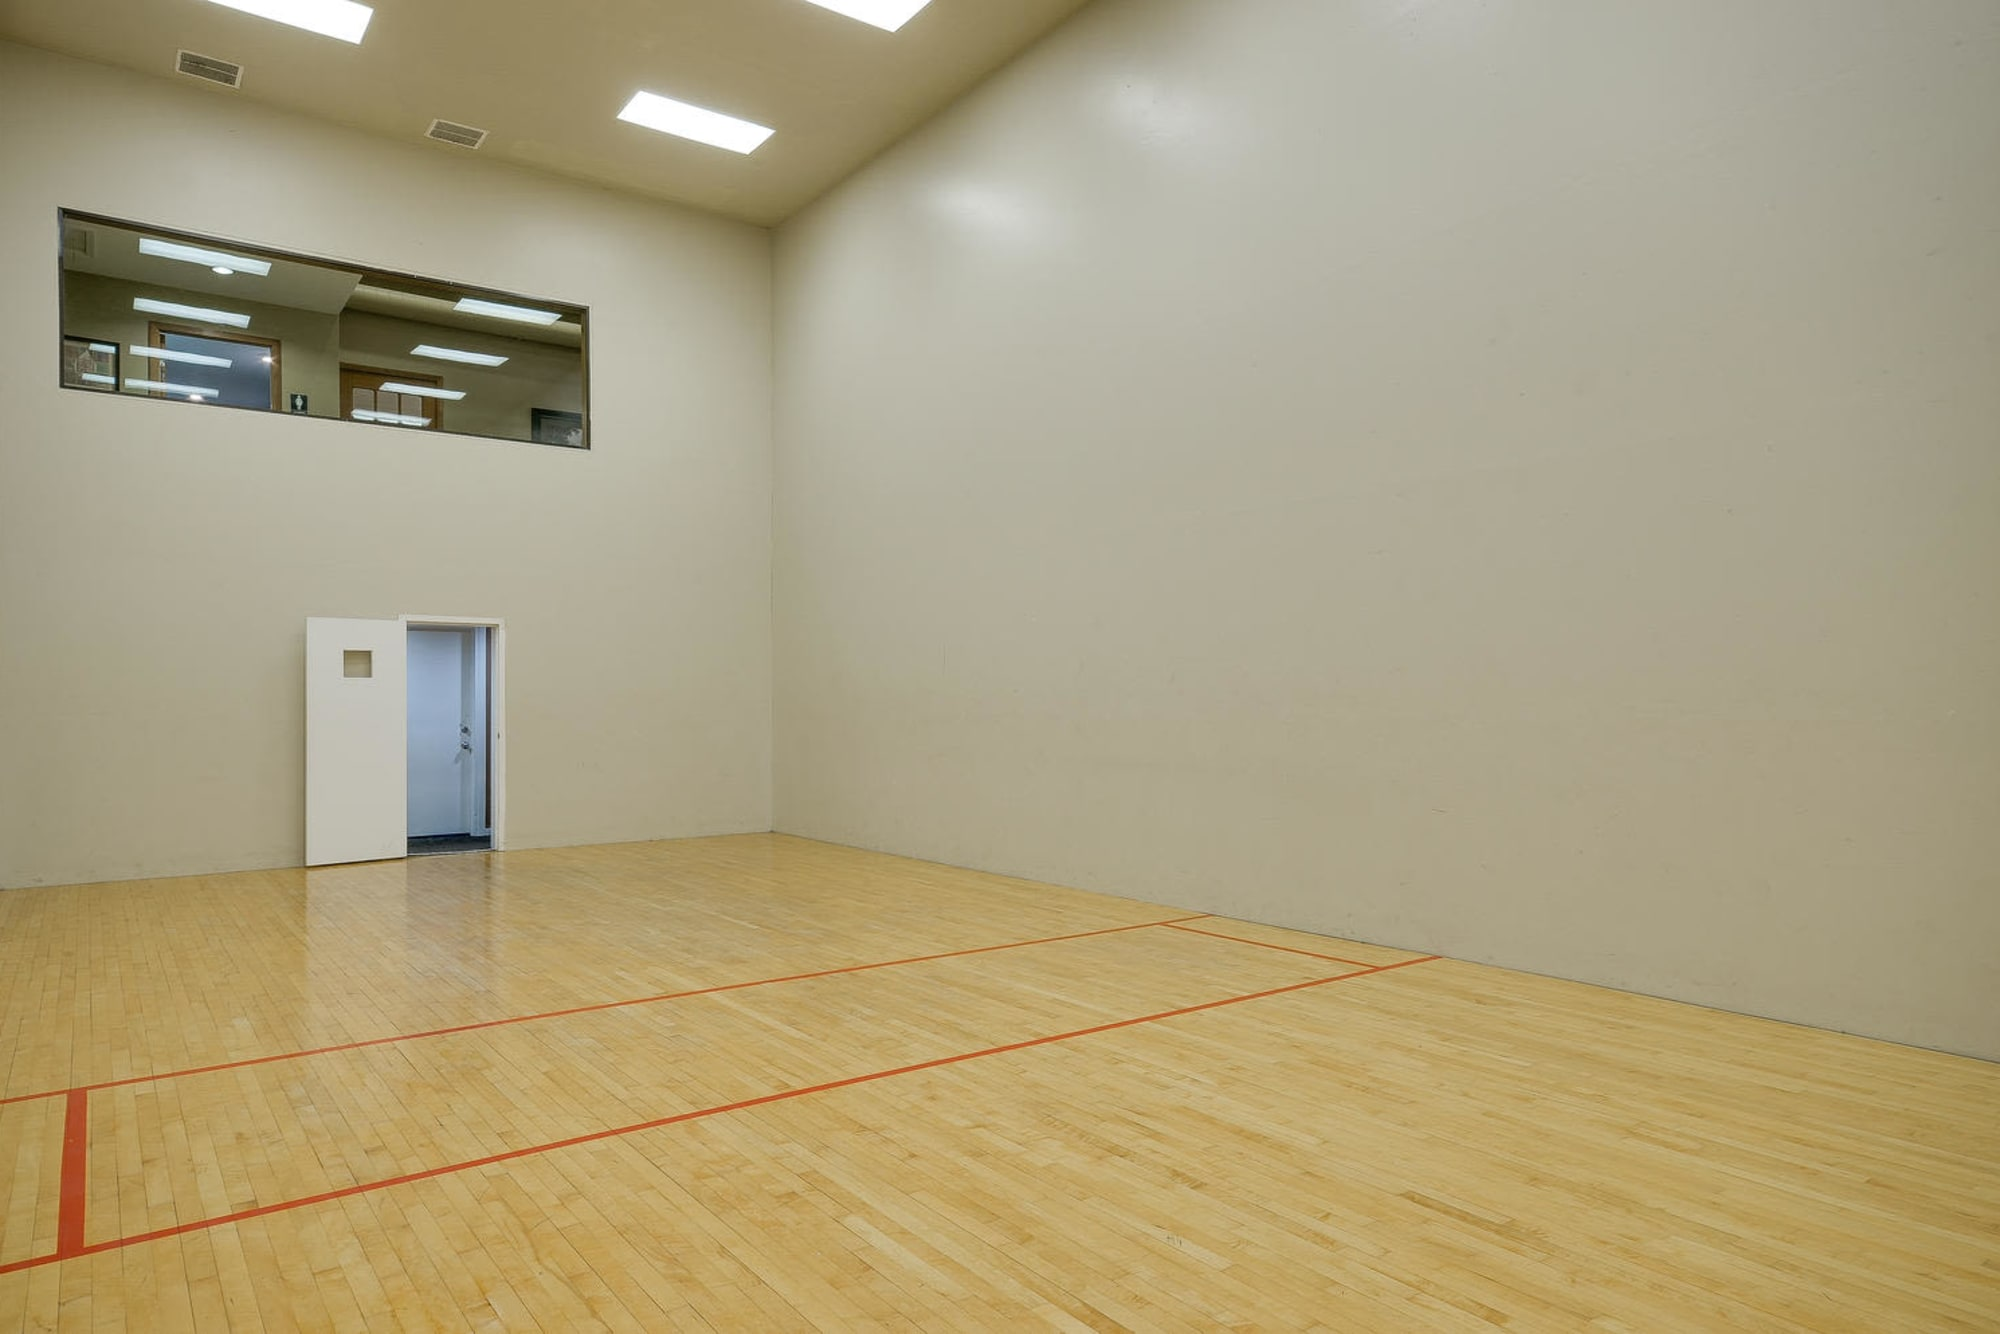 Racquetball court at Arbor Creek Apartments